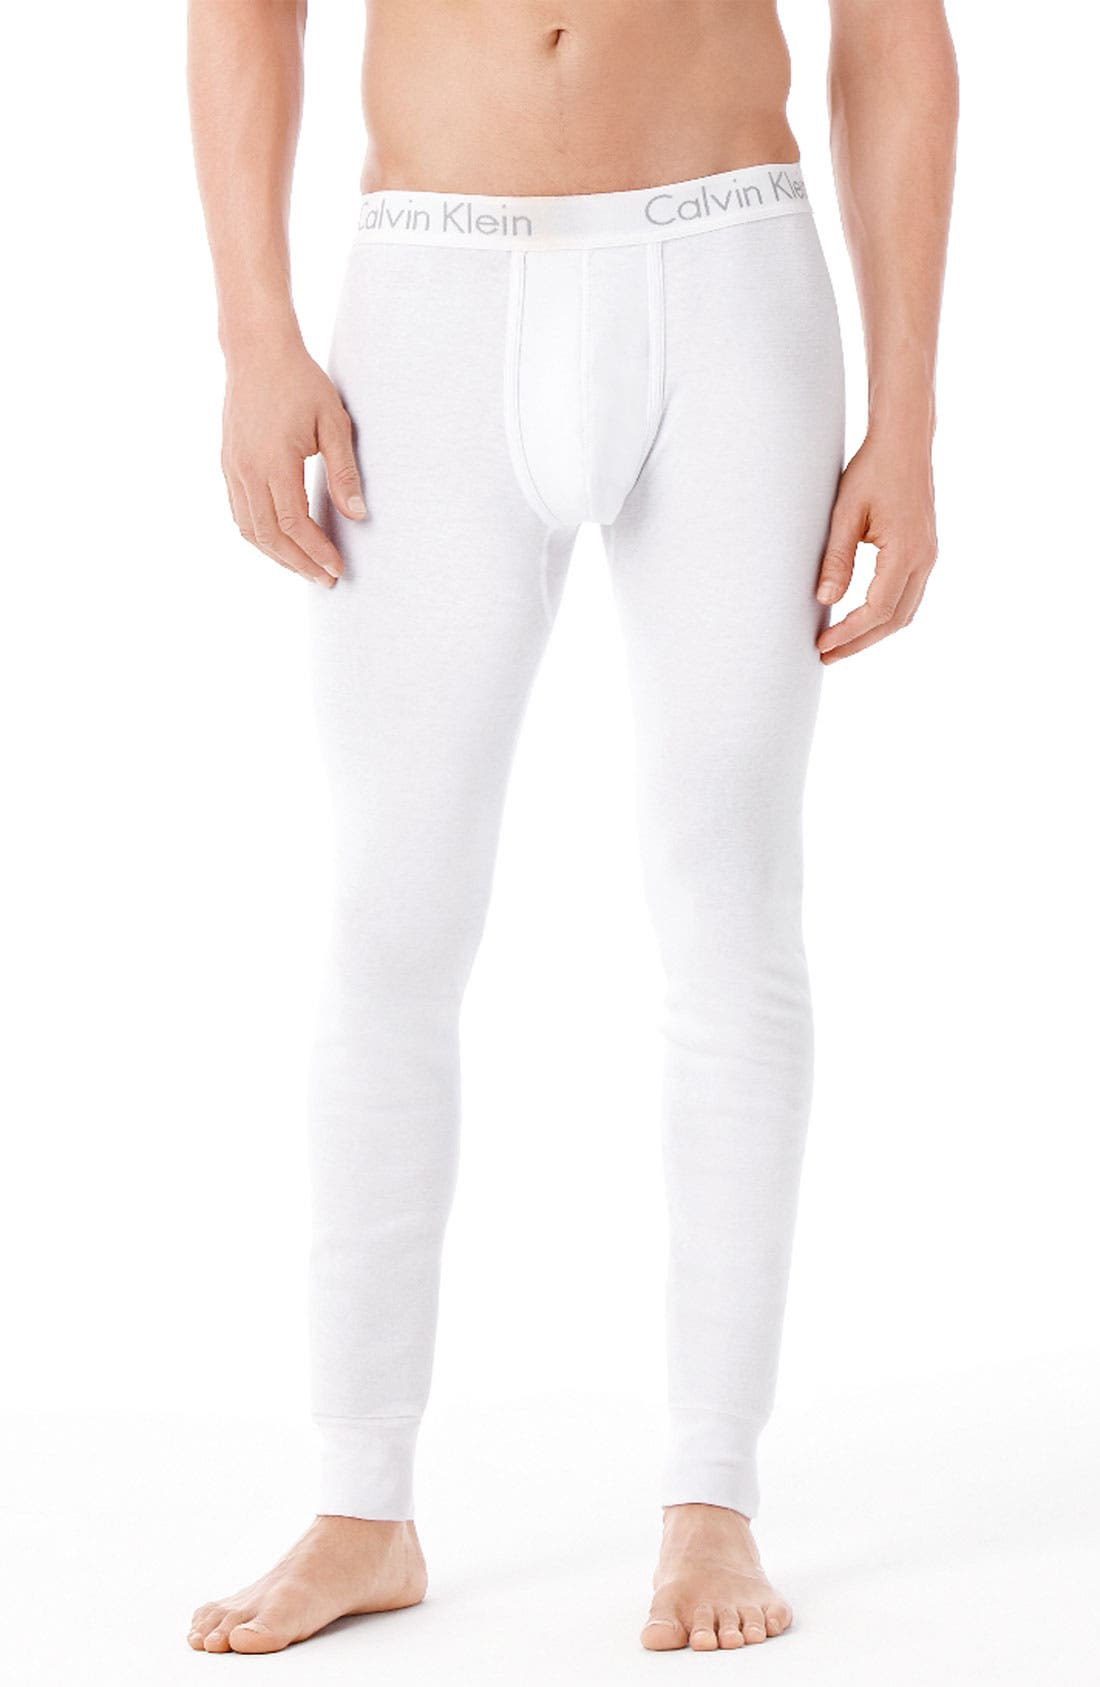 Main Image - Calvin Klein 'U1706' Cotton Long Underwear